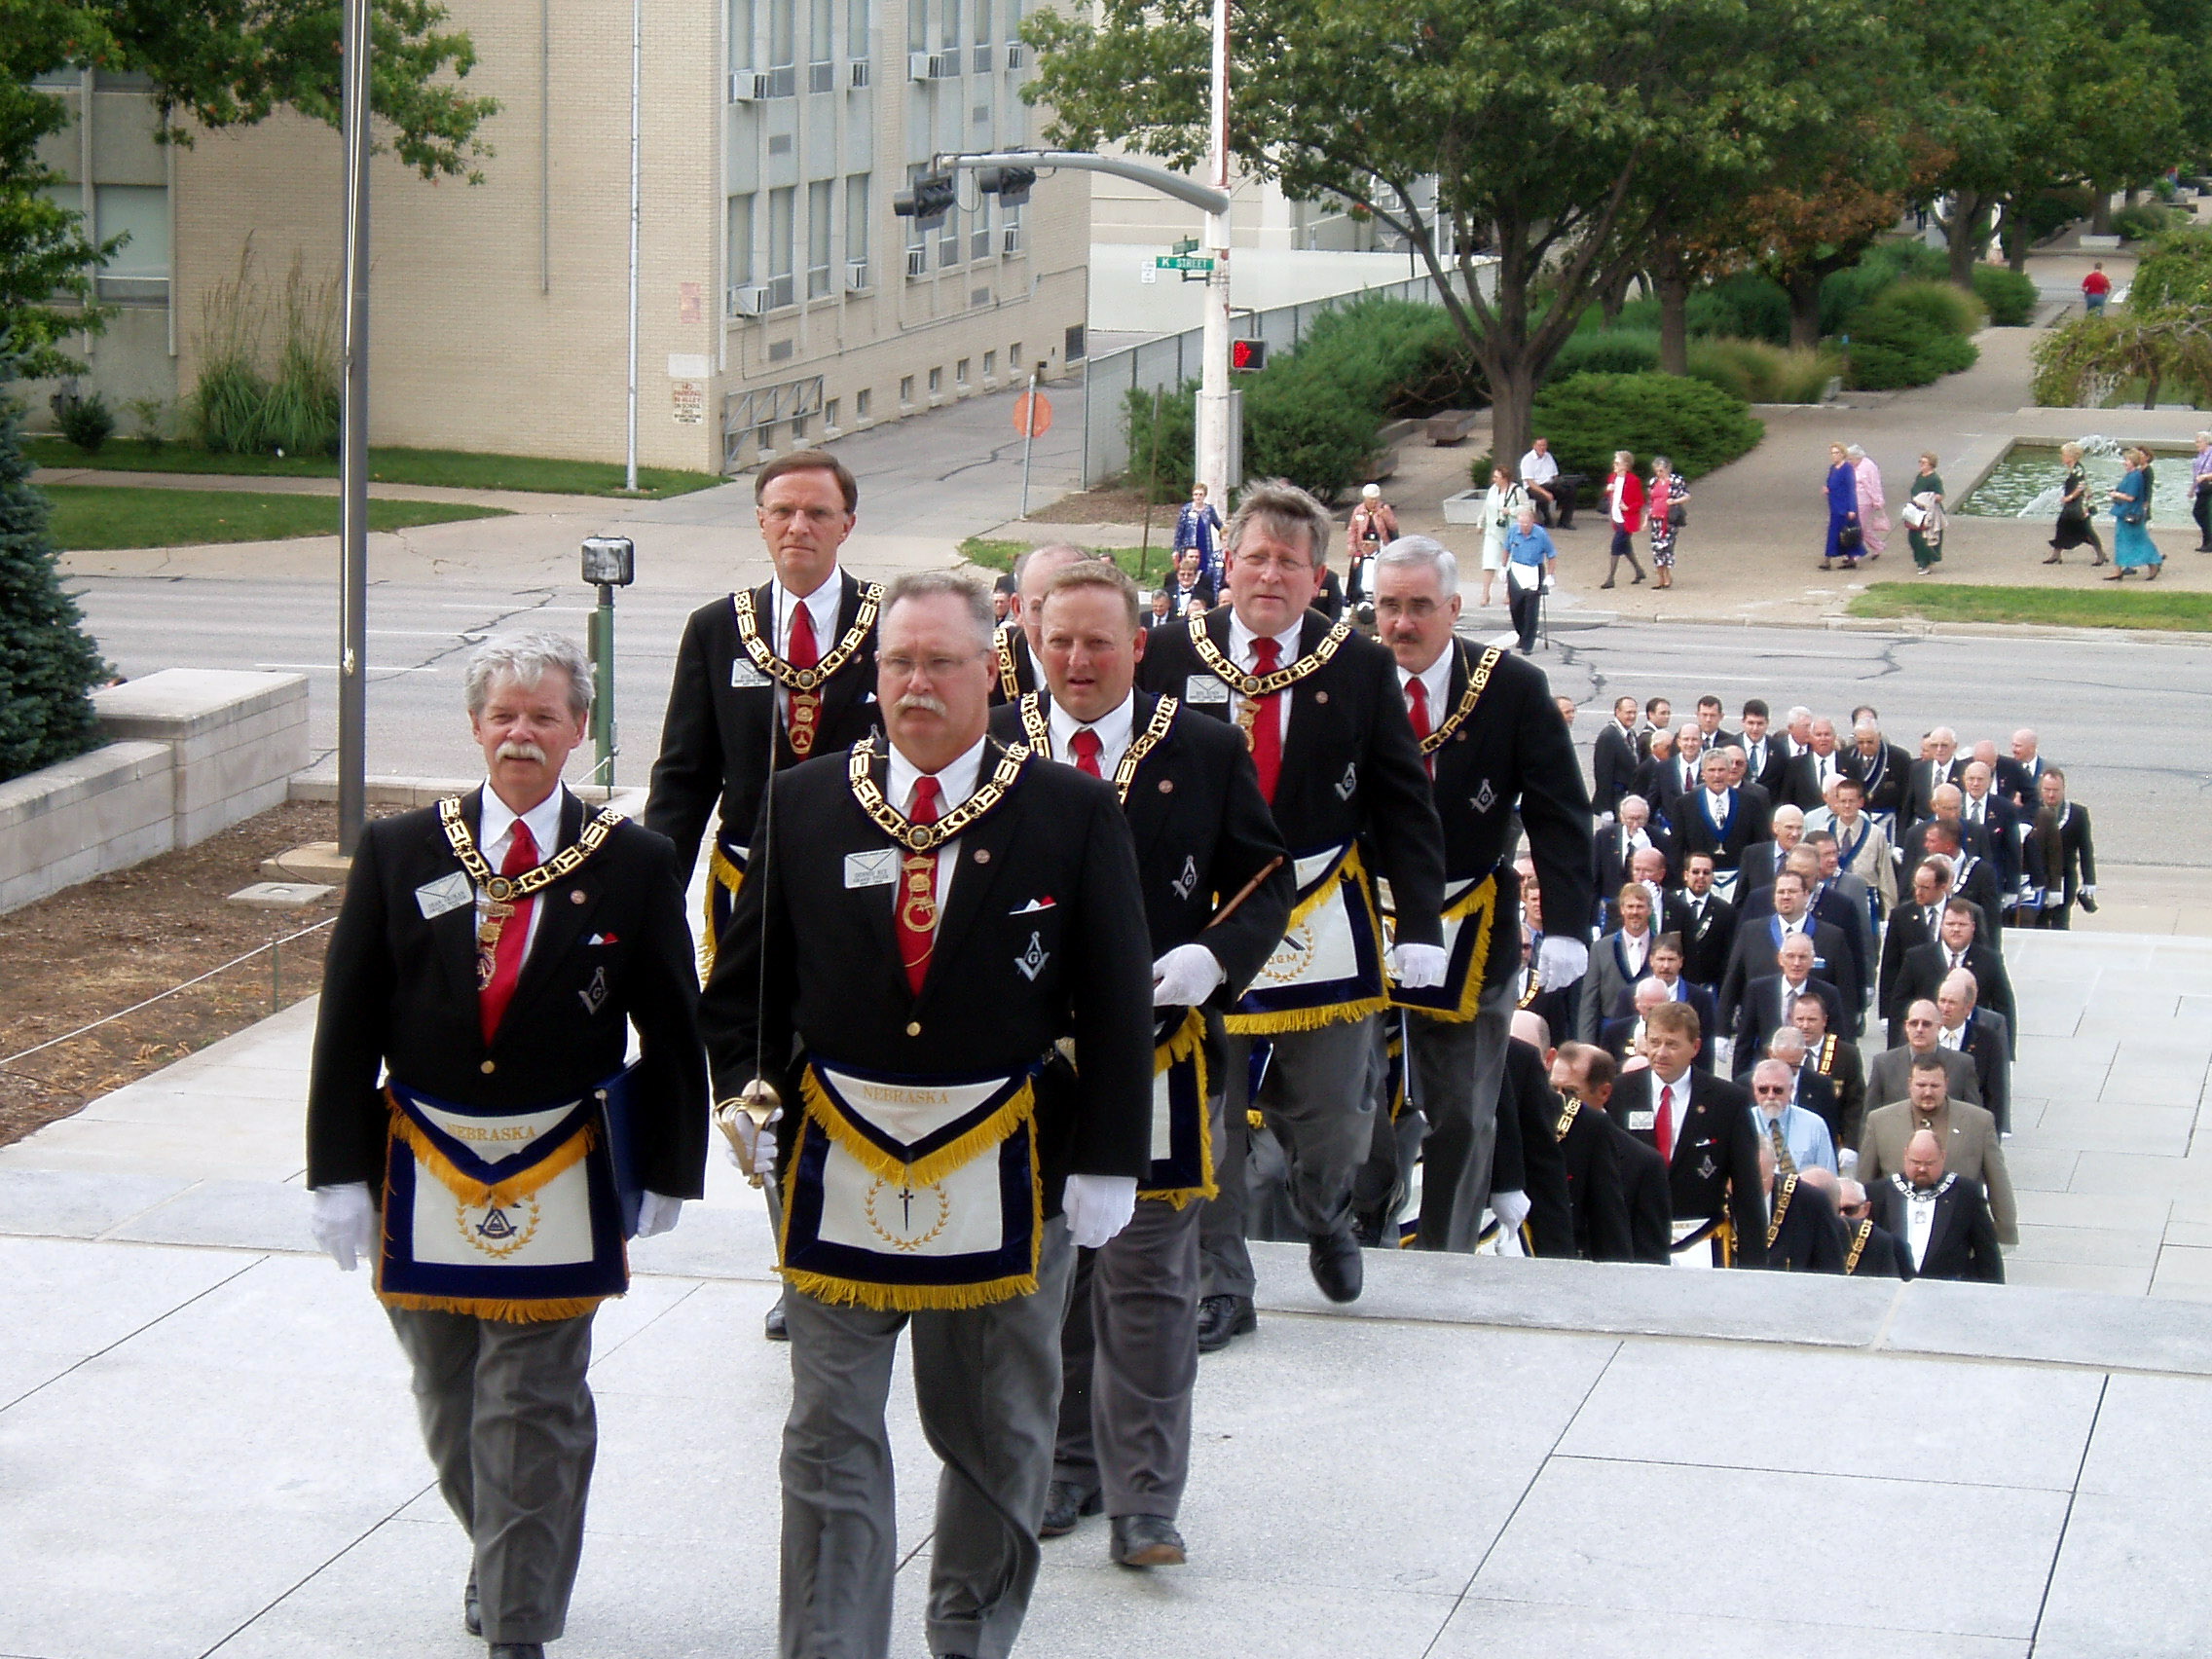 Grand Lodge officers celebrate the 150th anniversary of Freemasonry in Nebraska in 2007.